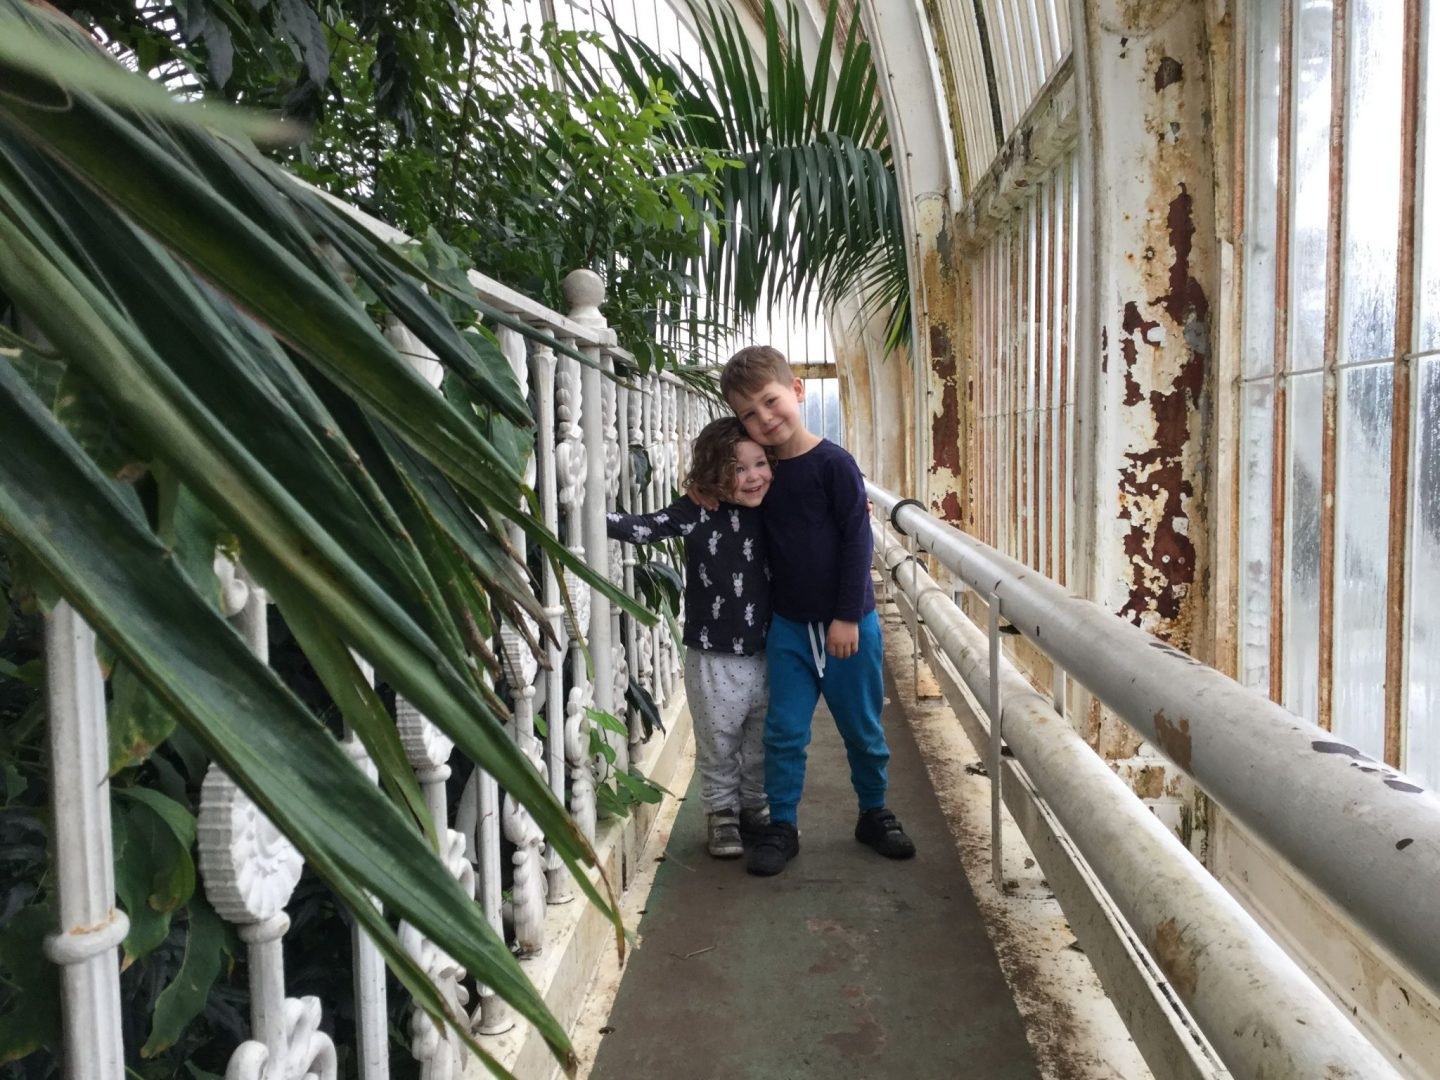 Museum Boy and Girl hug on the iron balcony of the Palm House, Kew Gardens